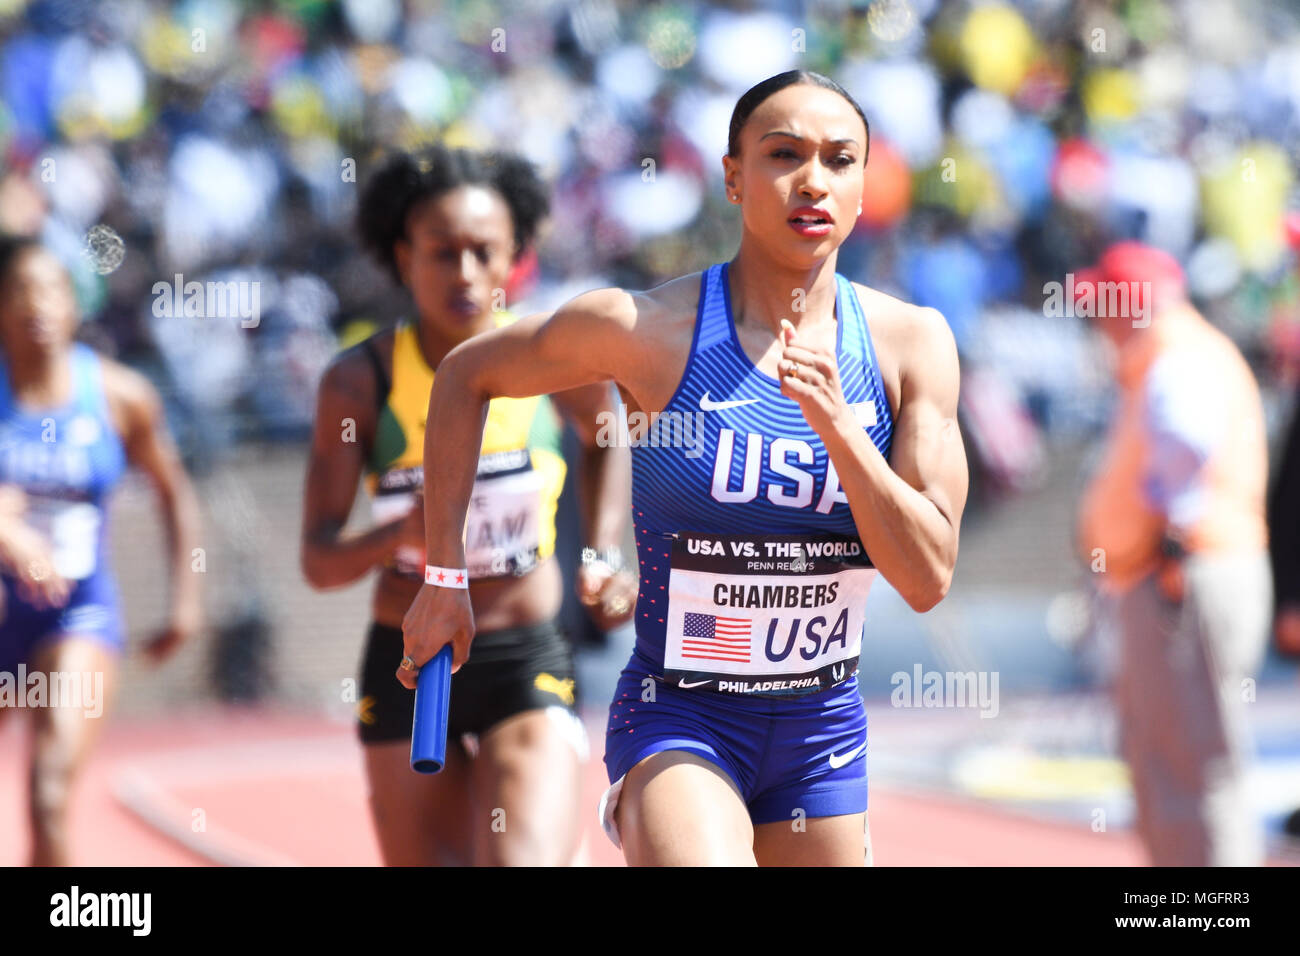 Philadelphia, Pennsylvania, USA. 28th Apr, 2018. KENDRA CHAMBERS of the USA in action during the USA vs The World Women 4x400 at the 124th running of the Penn Relays in Philadelphia Pennsylvania Credit: Ricky Fitchett/ZUMA Wire/Alamy Live News - Stock Image